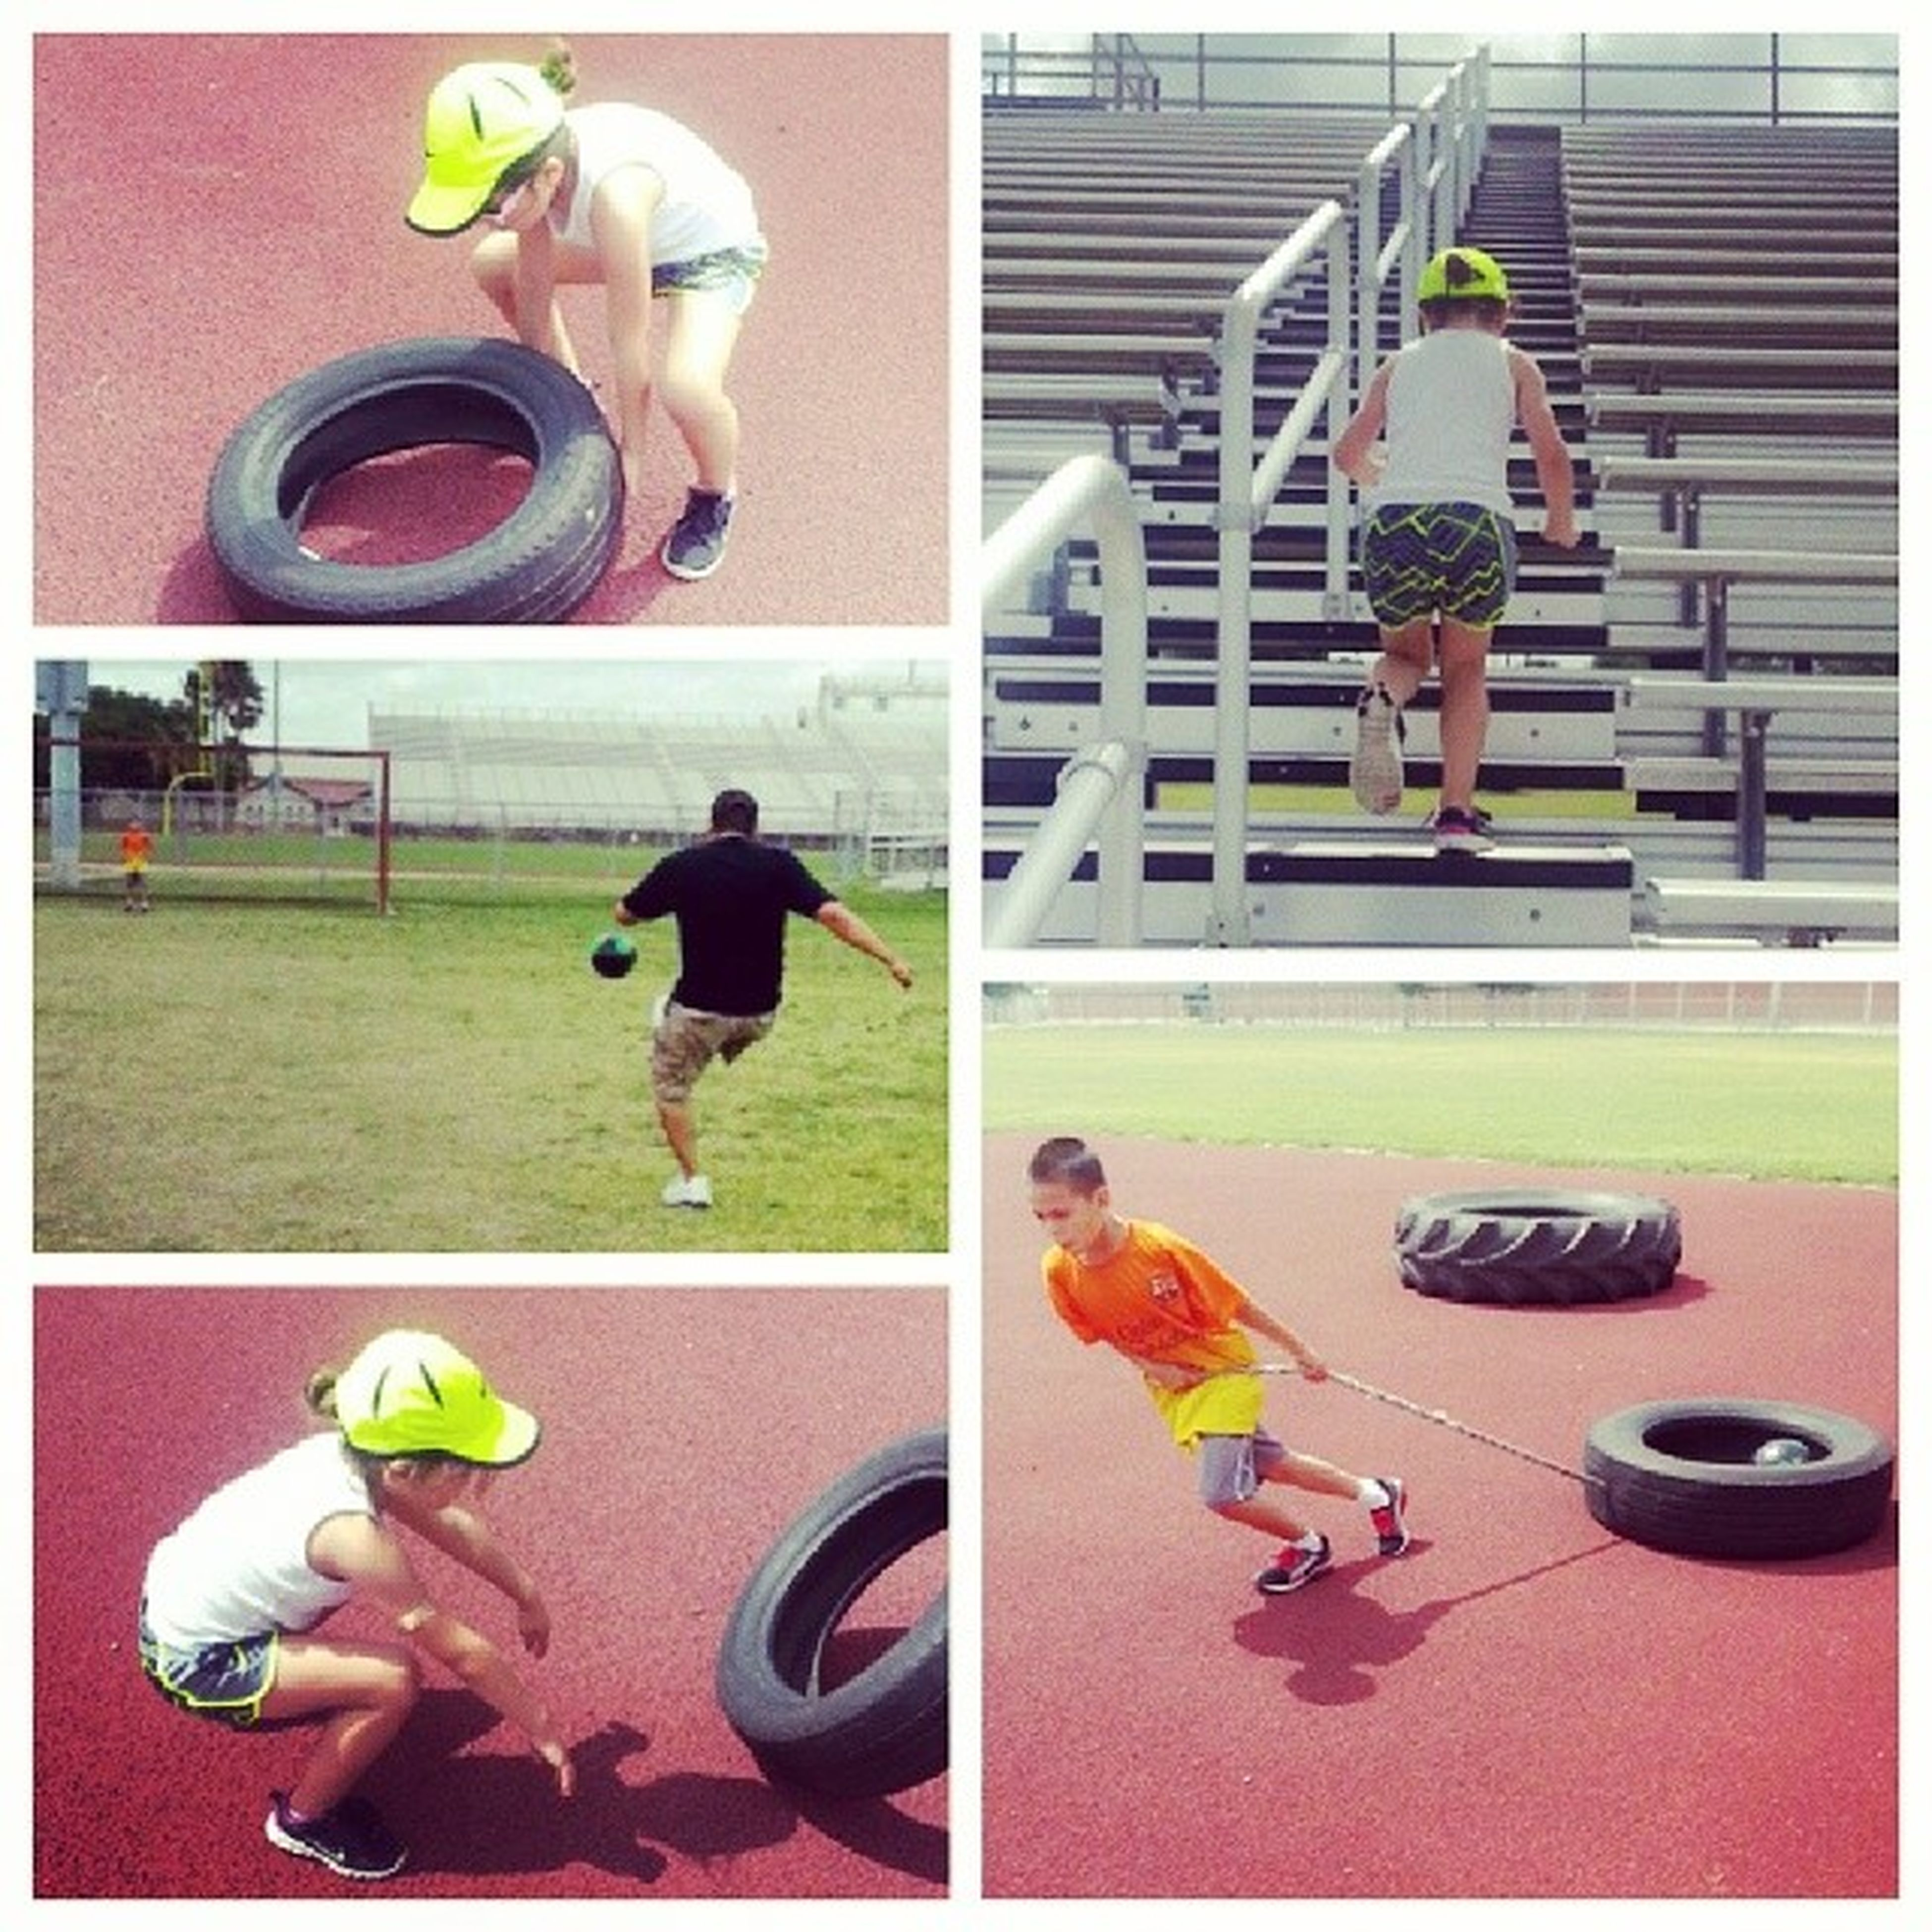 Sunday Funday! Family Workouttogether Neverendinglove